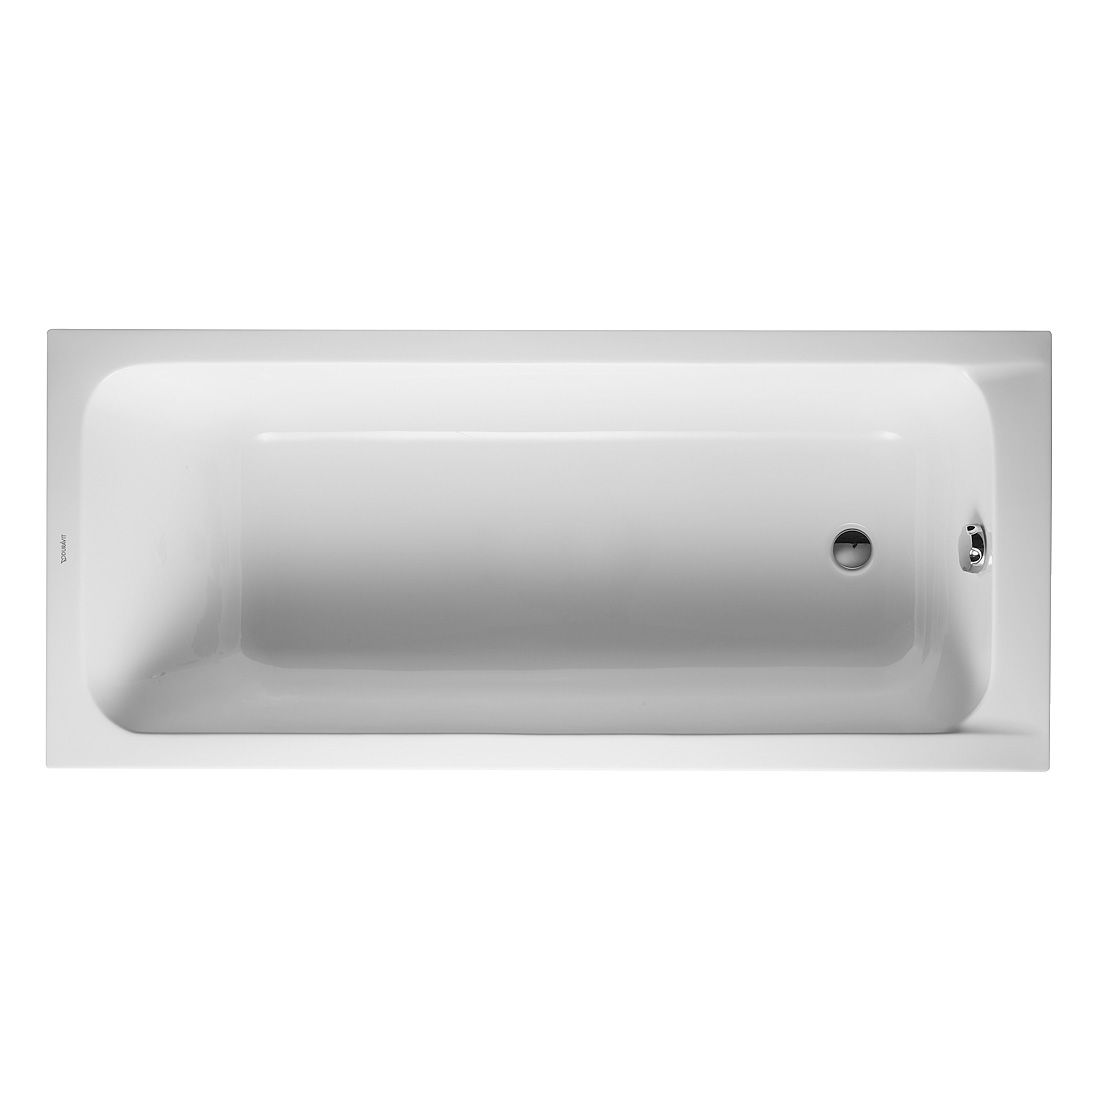 Shop Duravit 700 D-Code Drop-in Soaking Bathtub at The Mine. Browse ...